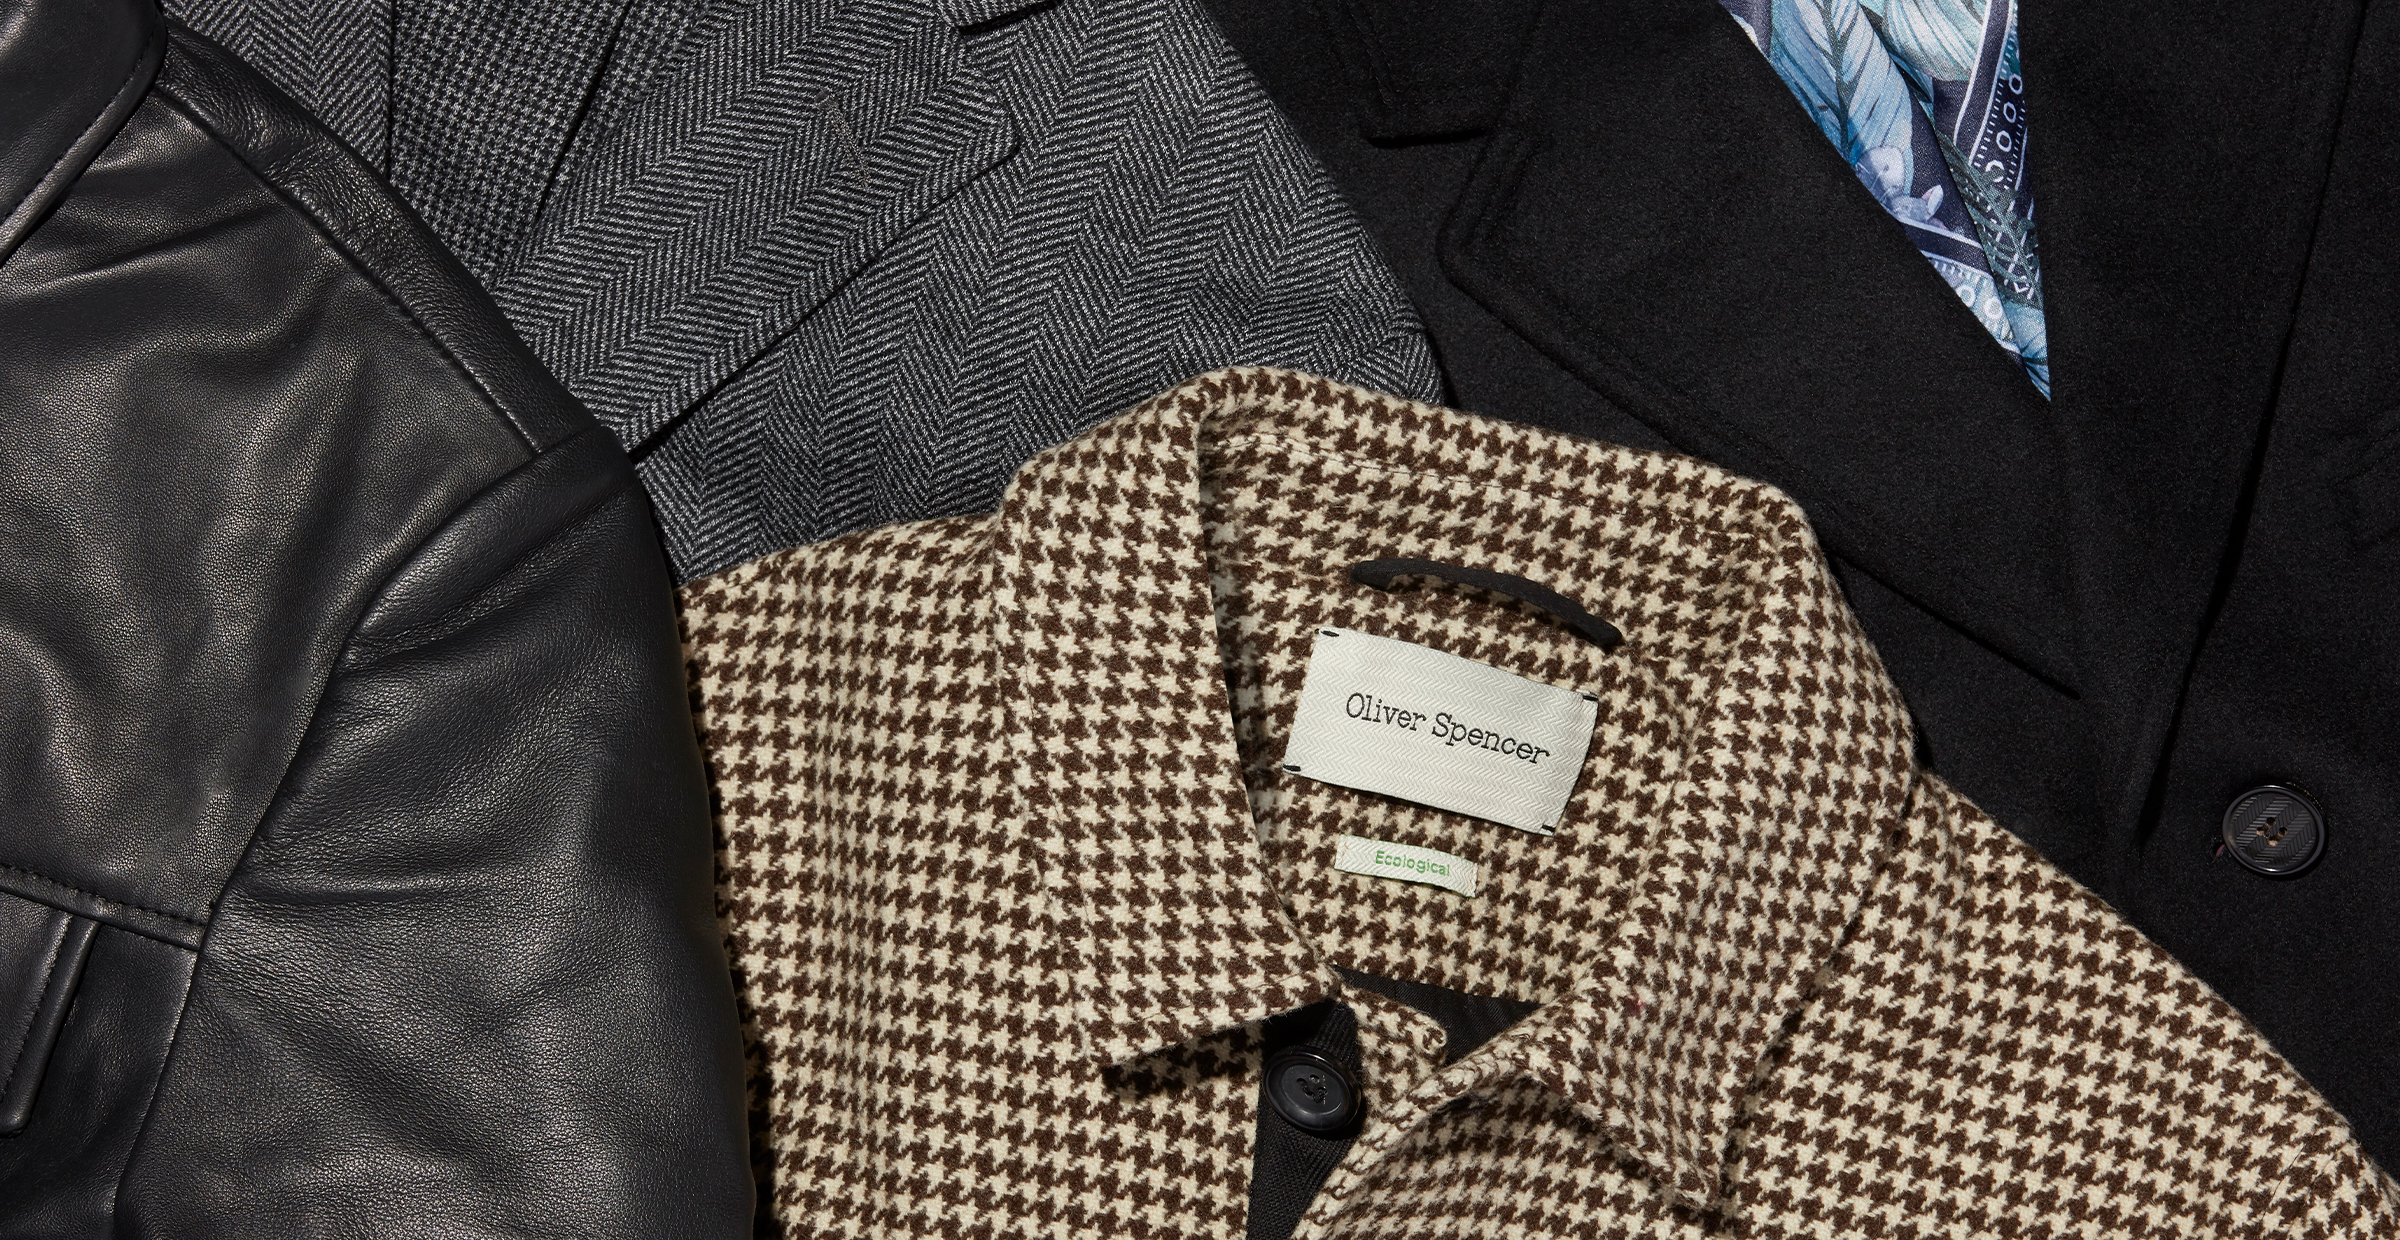 The Essential Winter Work Outfits for Men